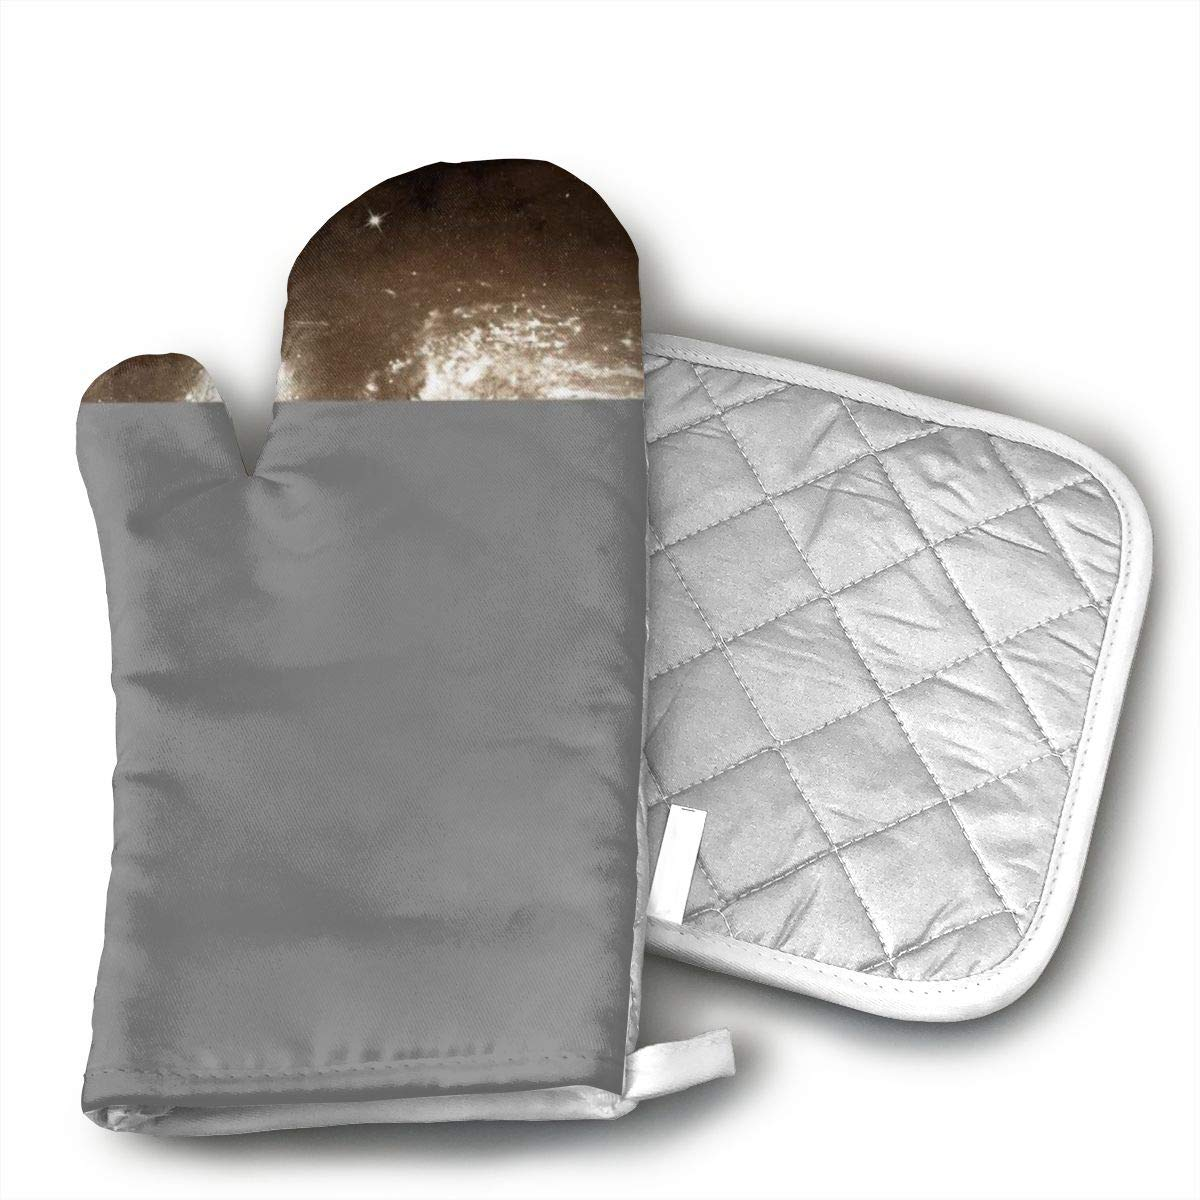 JFNNRUOP Sloth Space Astronaut Oven Mitts,with Potholders Oven Gloves,Insulated Quilted Cotton Potholders